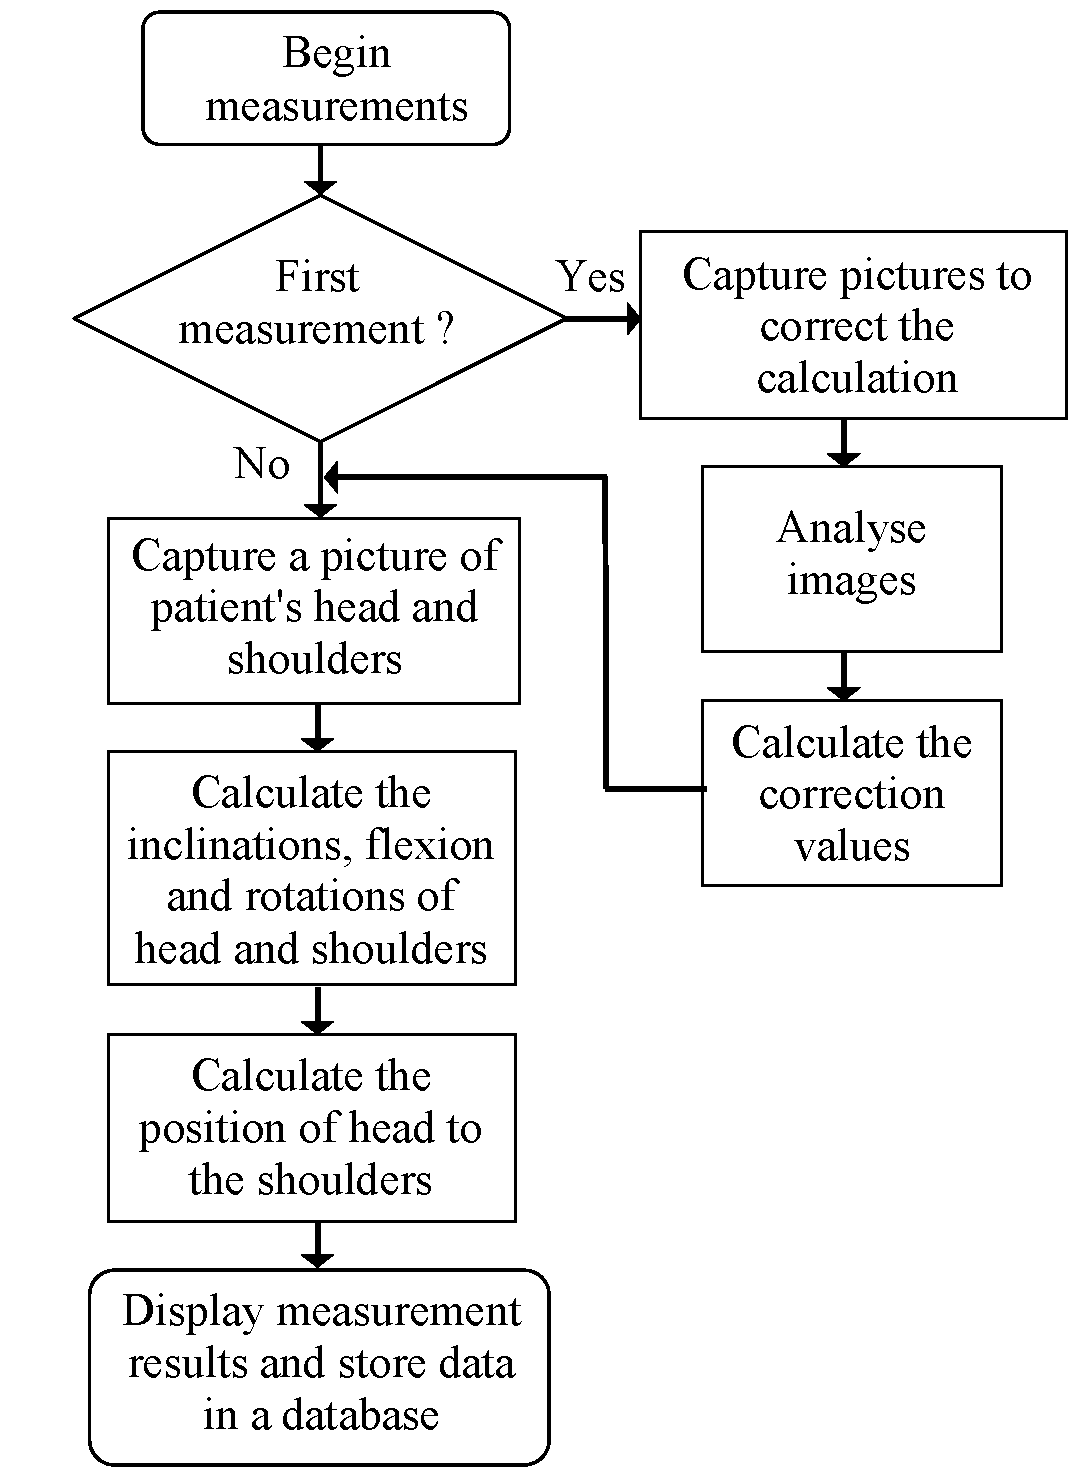 Methods of measurement and evaluation of eye head and shoulders flowchart of clinical measurements using designed camera system nvjuhfo Choice Image